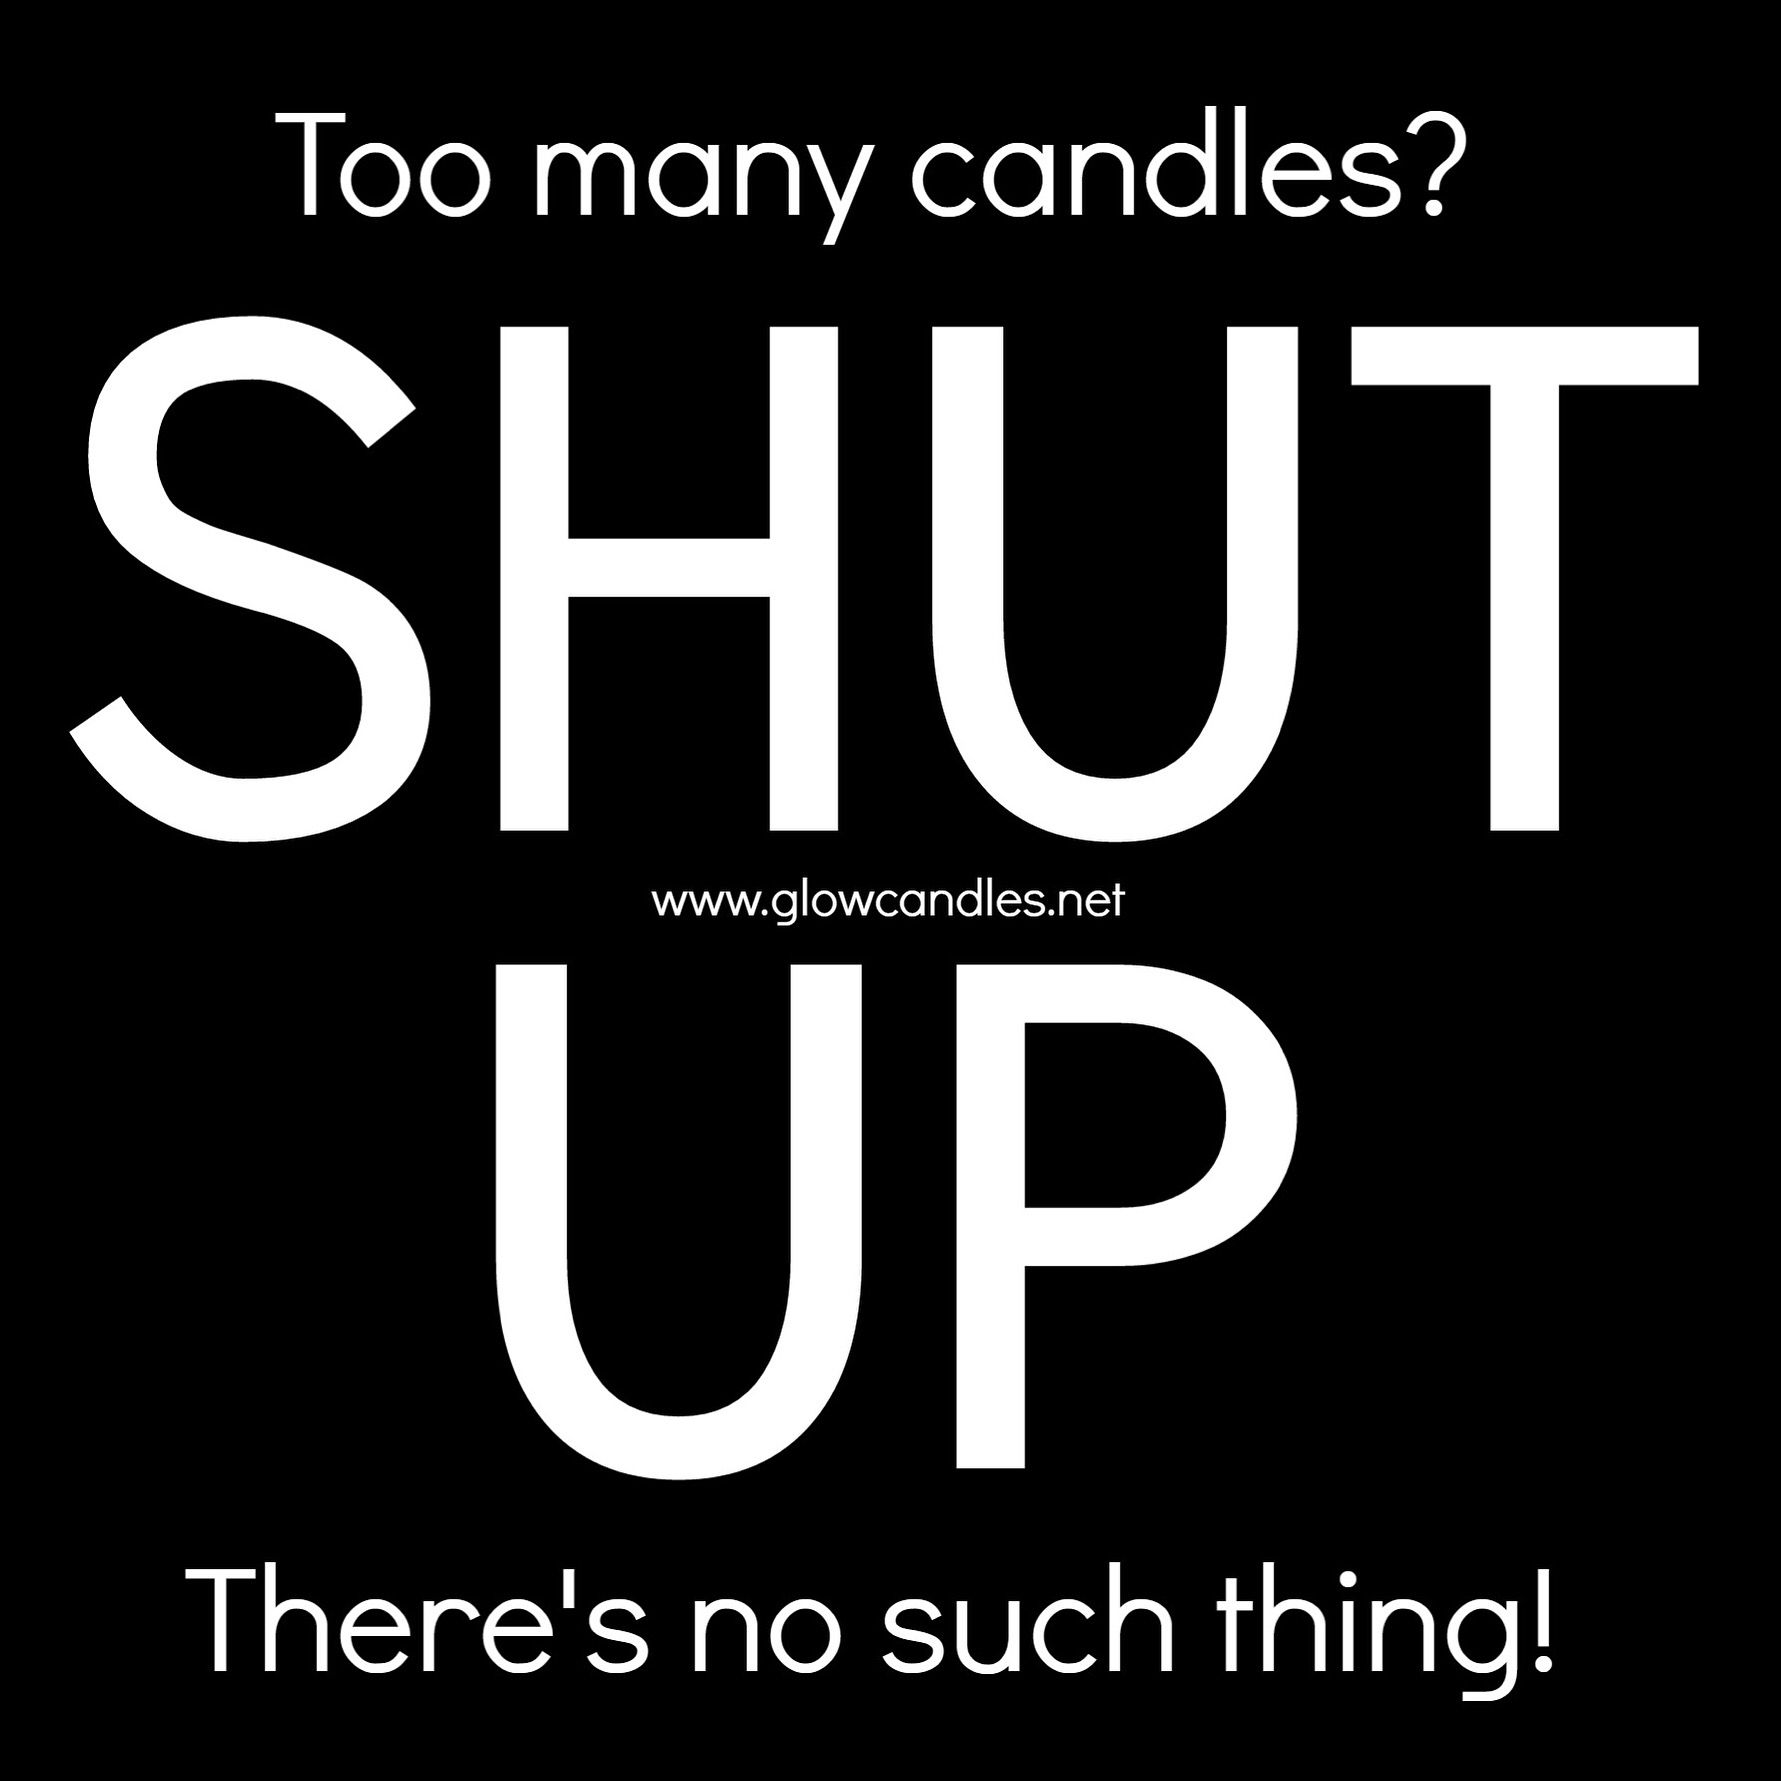 You Can Never Have Too Many Candles Candle Quotes Funny Funny Quotes Candle Quotes